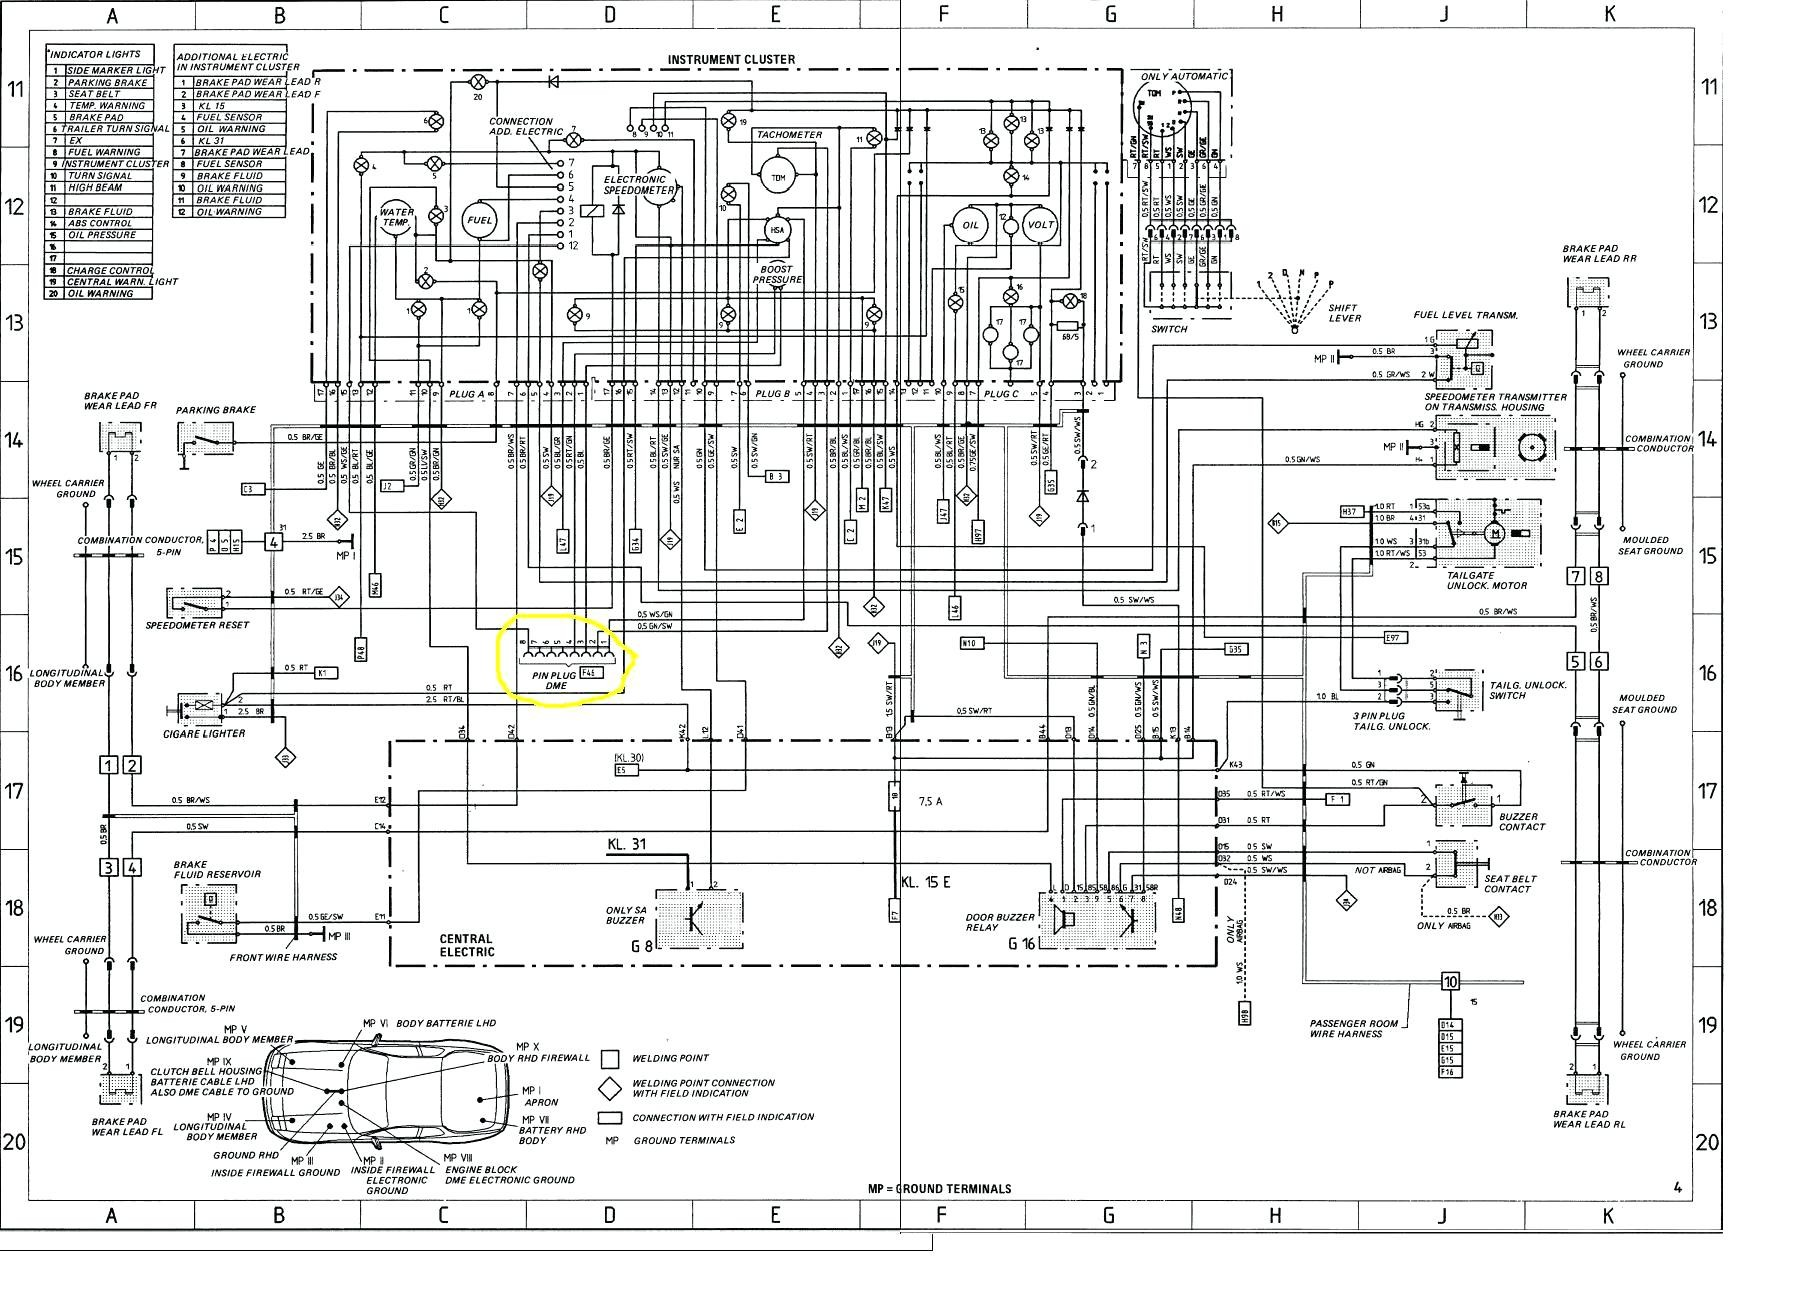 Porsche 944 Turbo Fuse Box Diagram